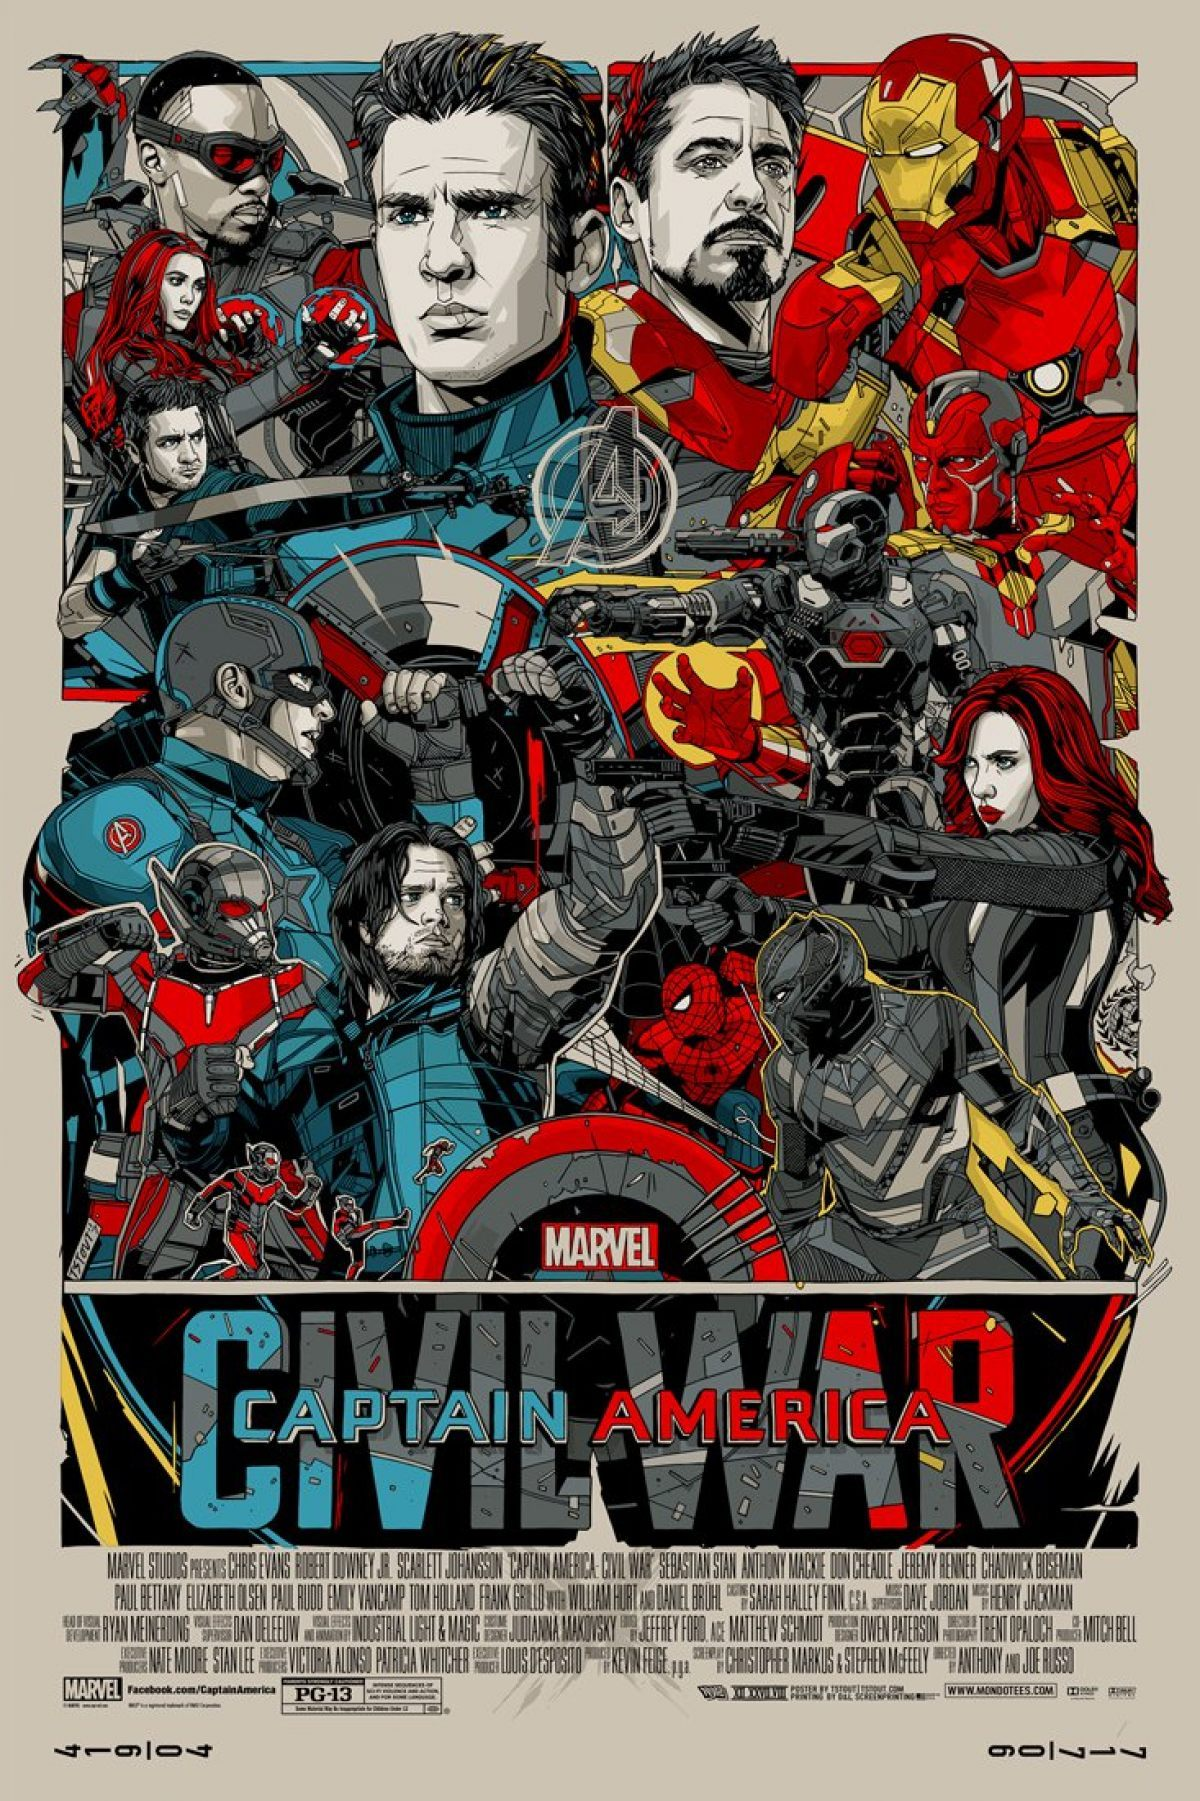 Tyler Stout is Back With an Amazing Captain America: Civil War Print for Mondo ! (3 pics)